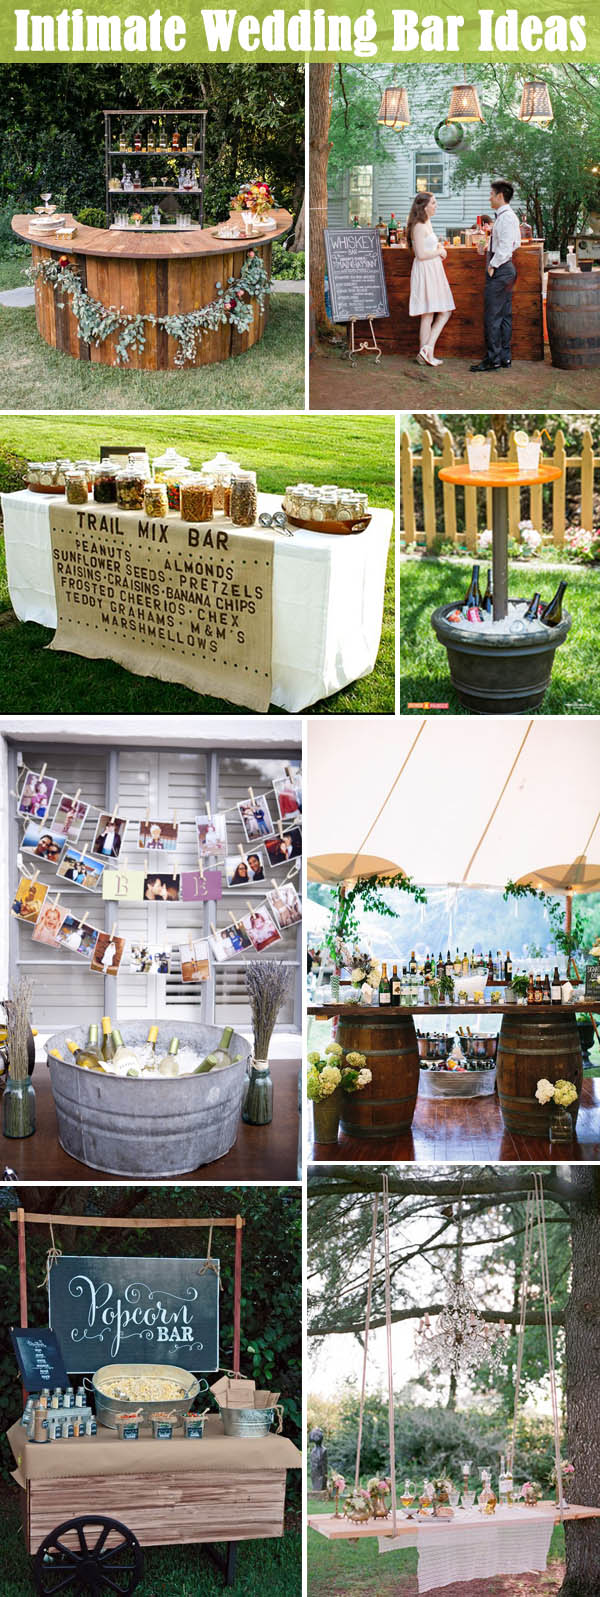 Innovative Intimate Small Wedding Bar Ideas To Get Your Guest Involed Intimate Wedding Five Essential Elements That Bring Your Small Wedding Ideas Near Me Small Wedding Ideas Spring wedding gifts Small Wedding Ideas